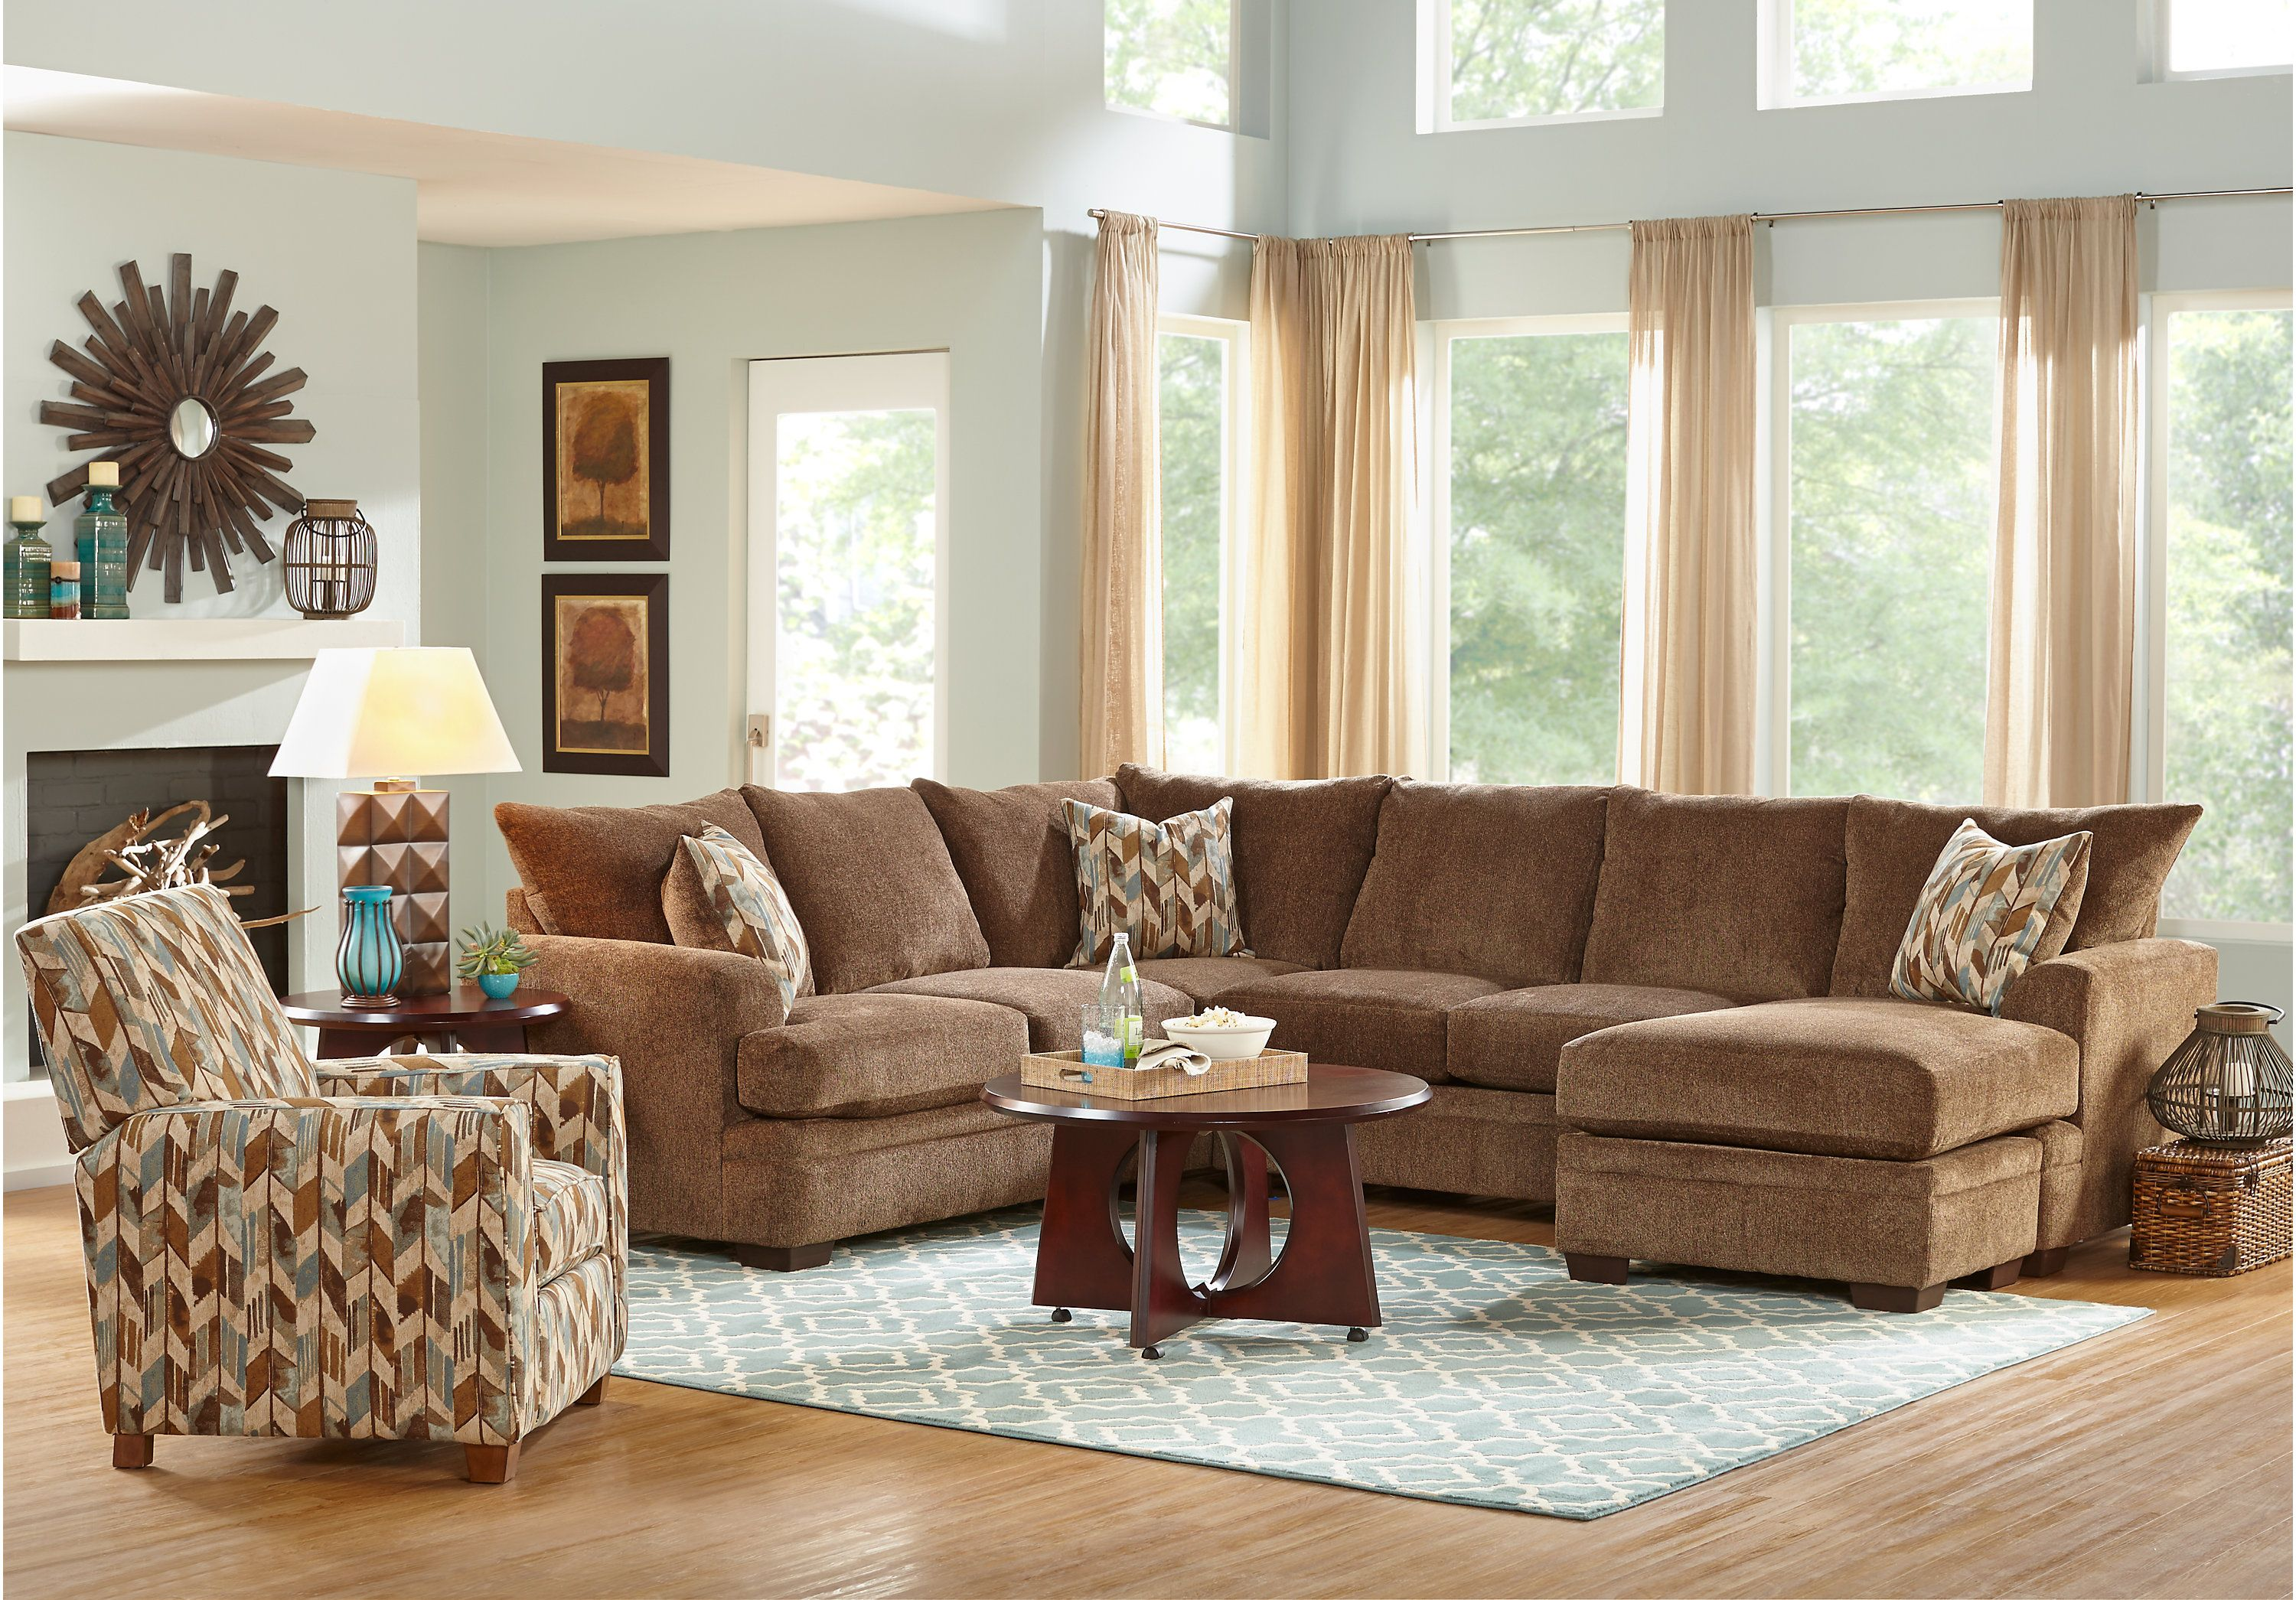 picture of Brenton Court Cocoa 5 Pc Sectional Living Room from Living Room Sets…